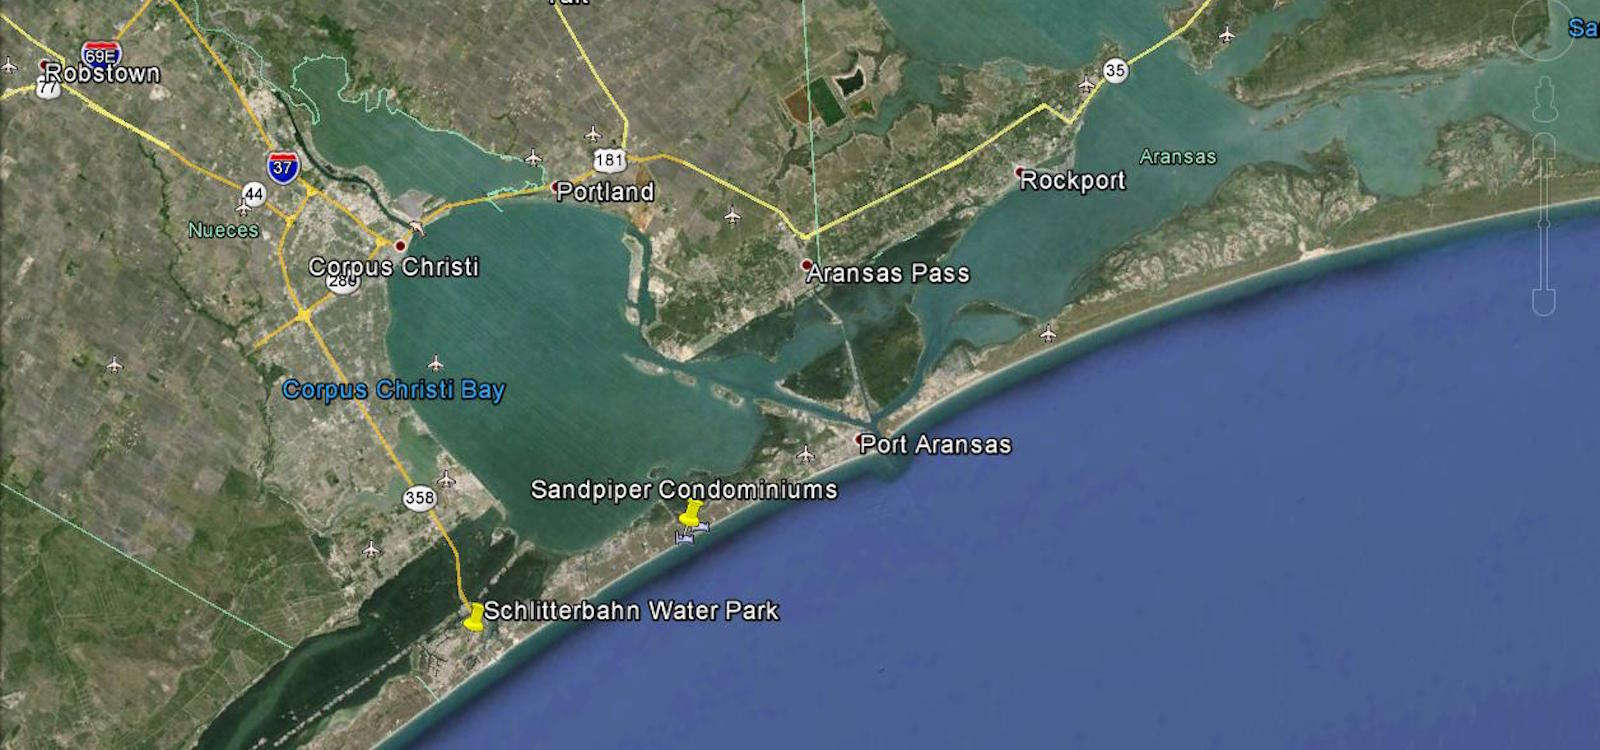 Port Aransas Map | Sandpiper Condos Location & Directions - Google Maps Port Aransas Texas